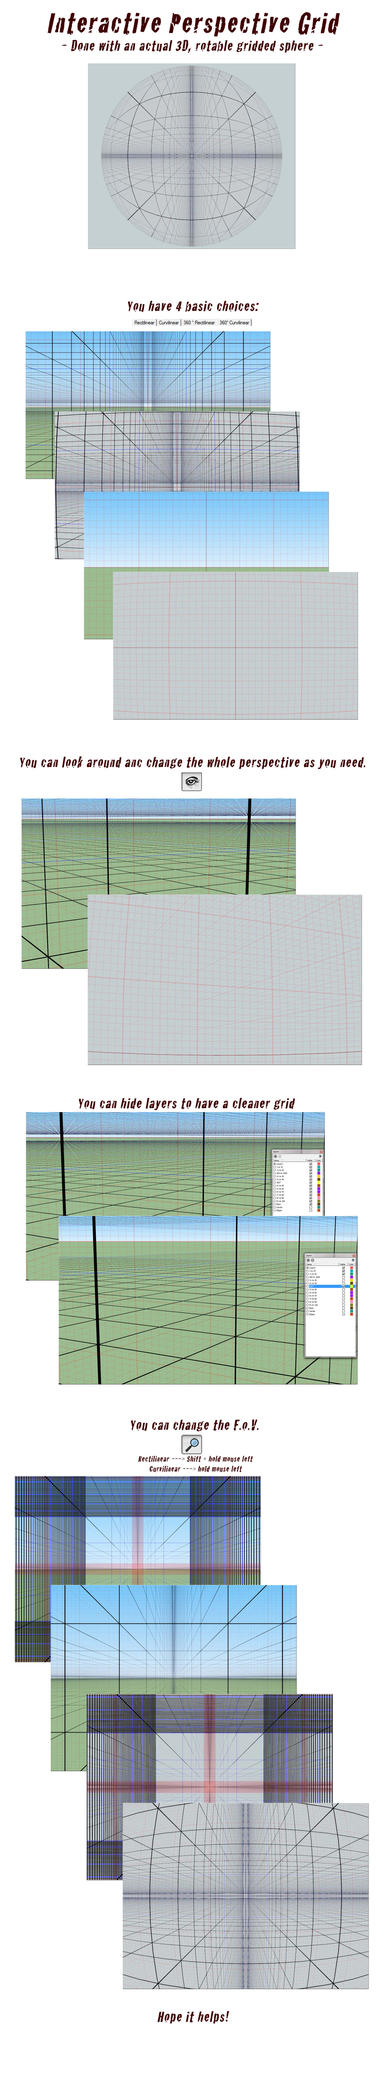 Interactive perspective grid by AliceSacco